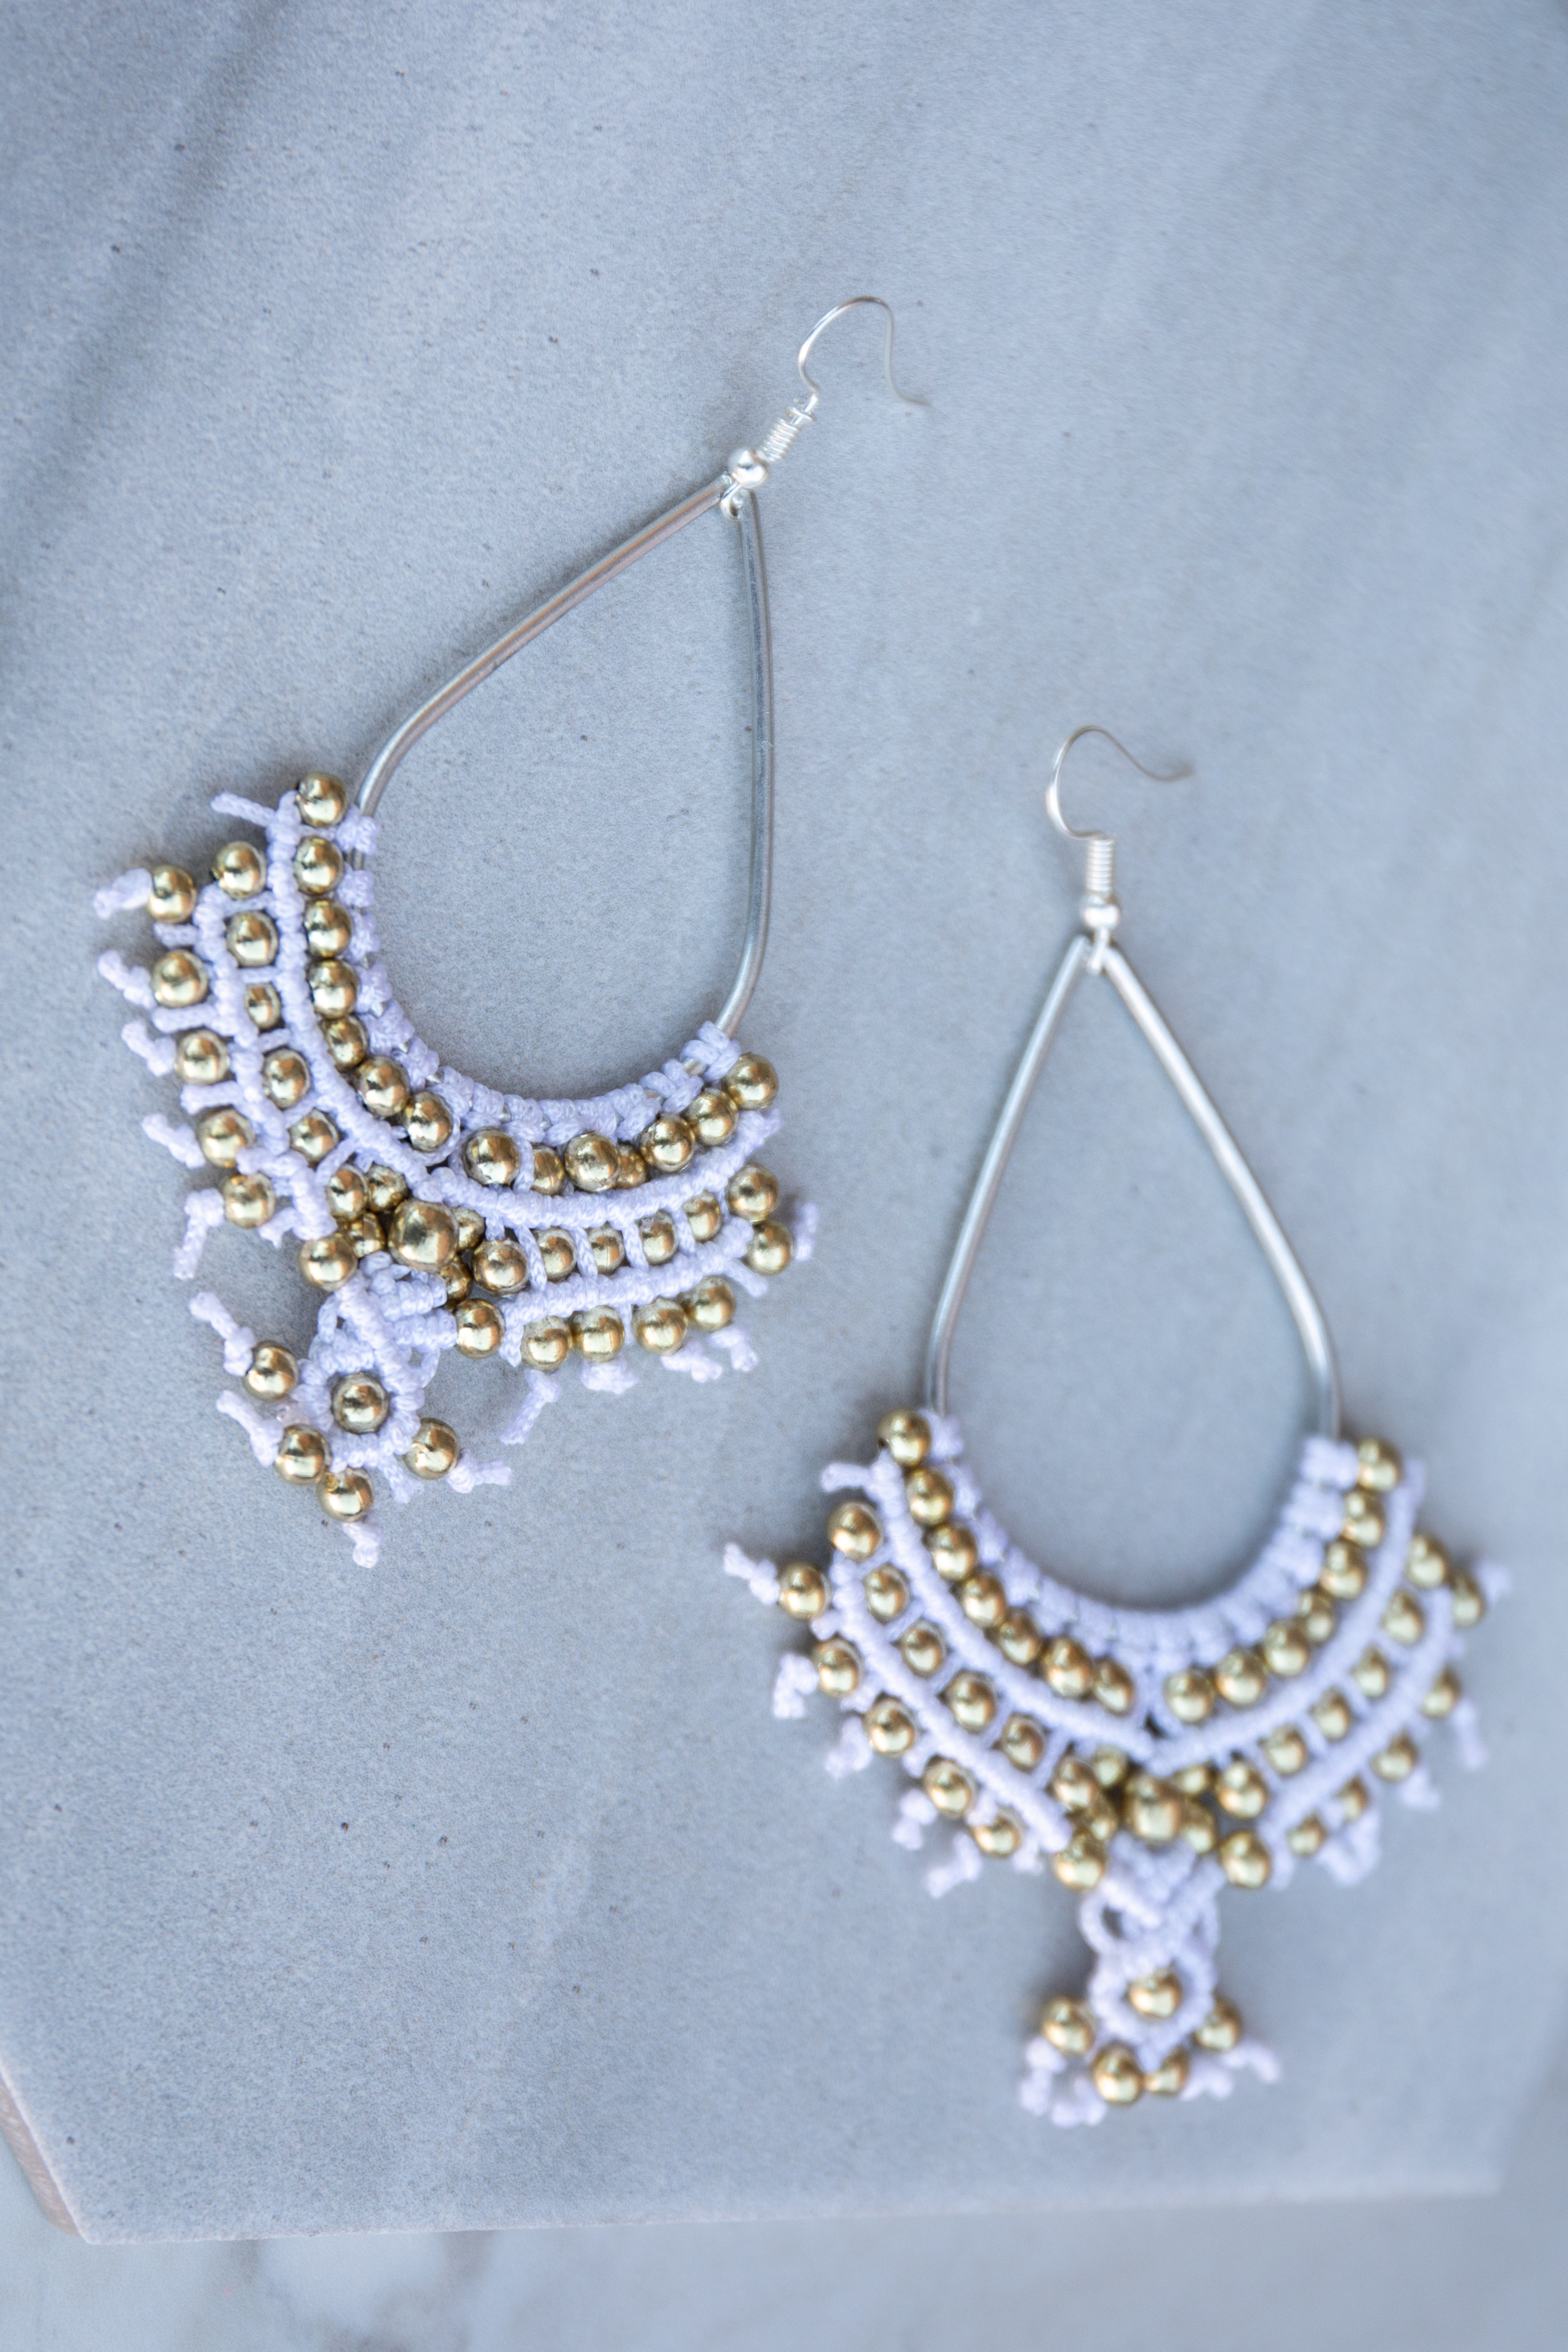 Silver Teardrop Earrings with White Woven Detail and Beads